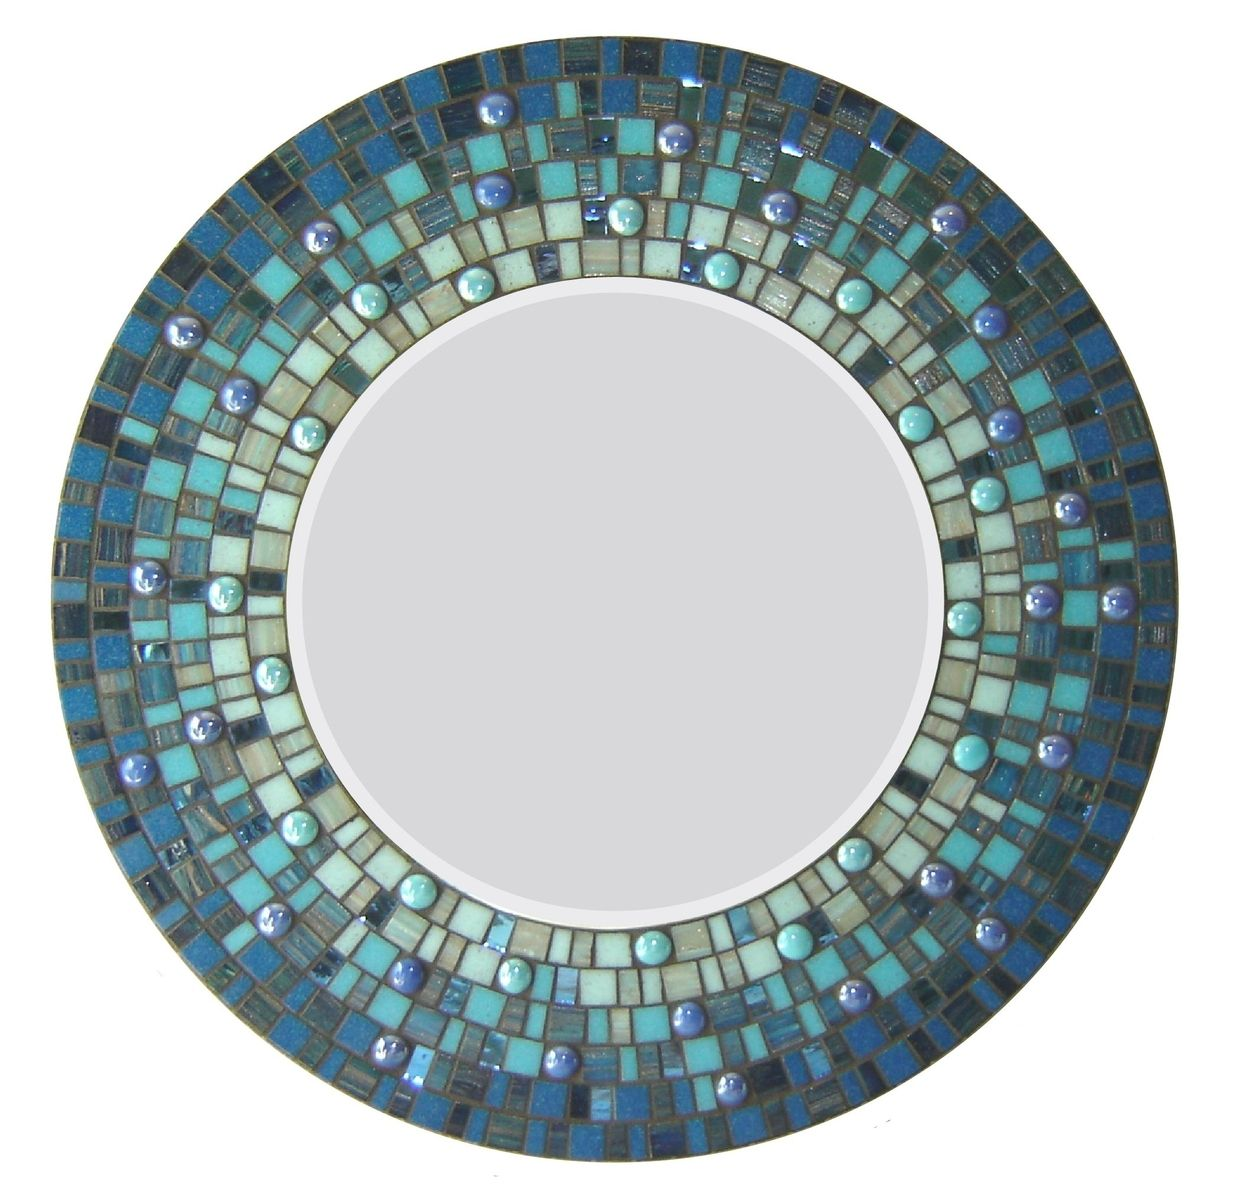 Hand crafted round mosaic wall mirror blue by opus mosaics custom made round mosaic wall mirror blue amipublicfo Image collections